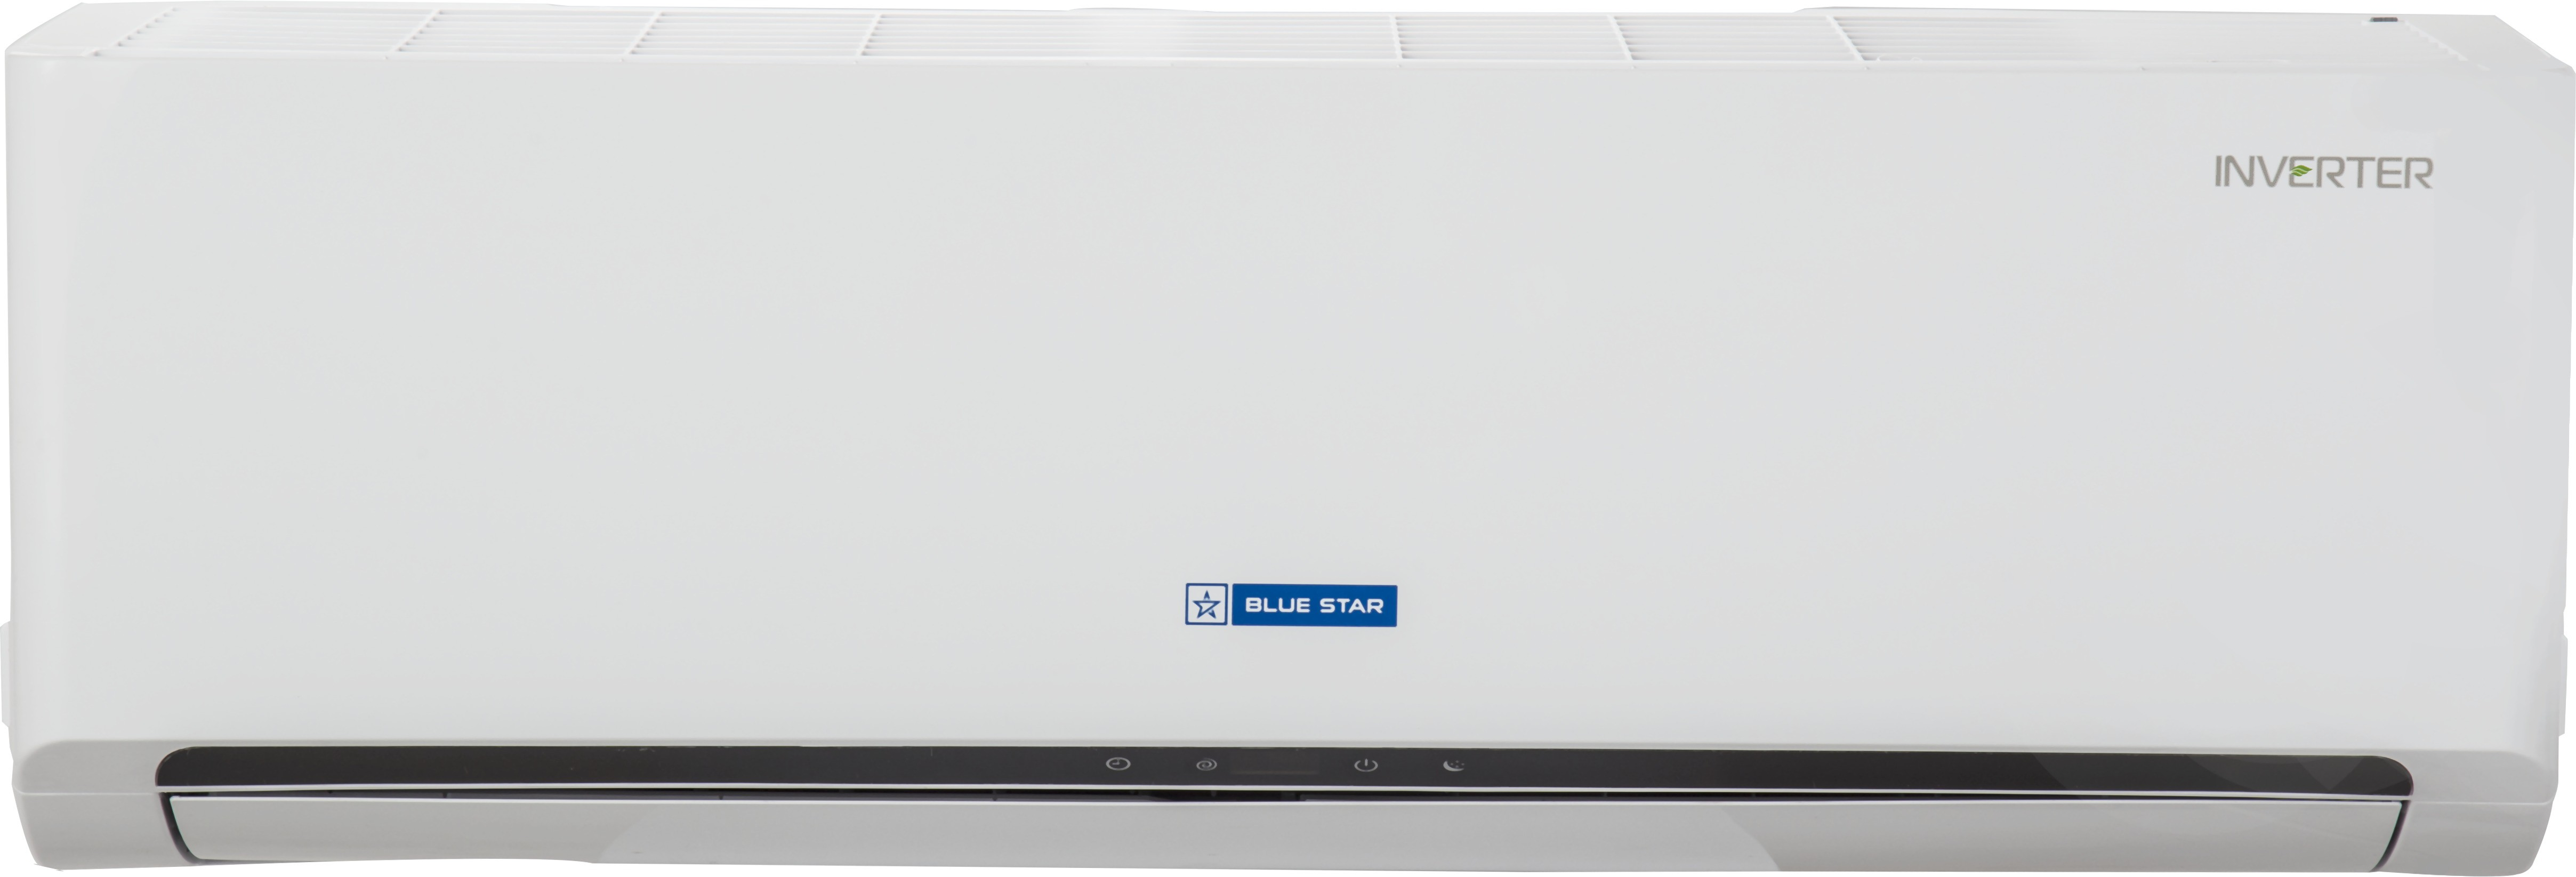 Blue Star BI-3CNHW12WAFU/BO-3CNHW12WAFU 1 Ton 3 Star BEE Rating 2018 Inverter AC Image